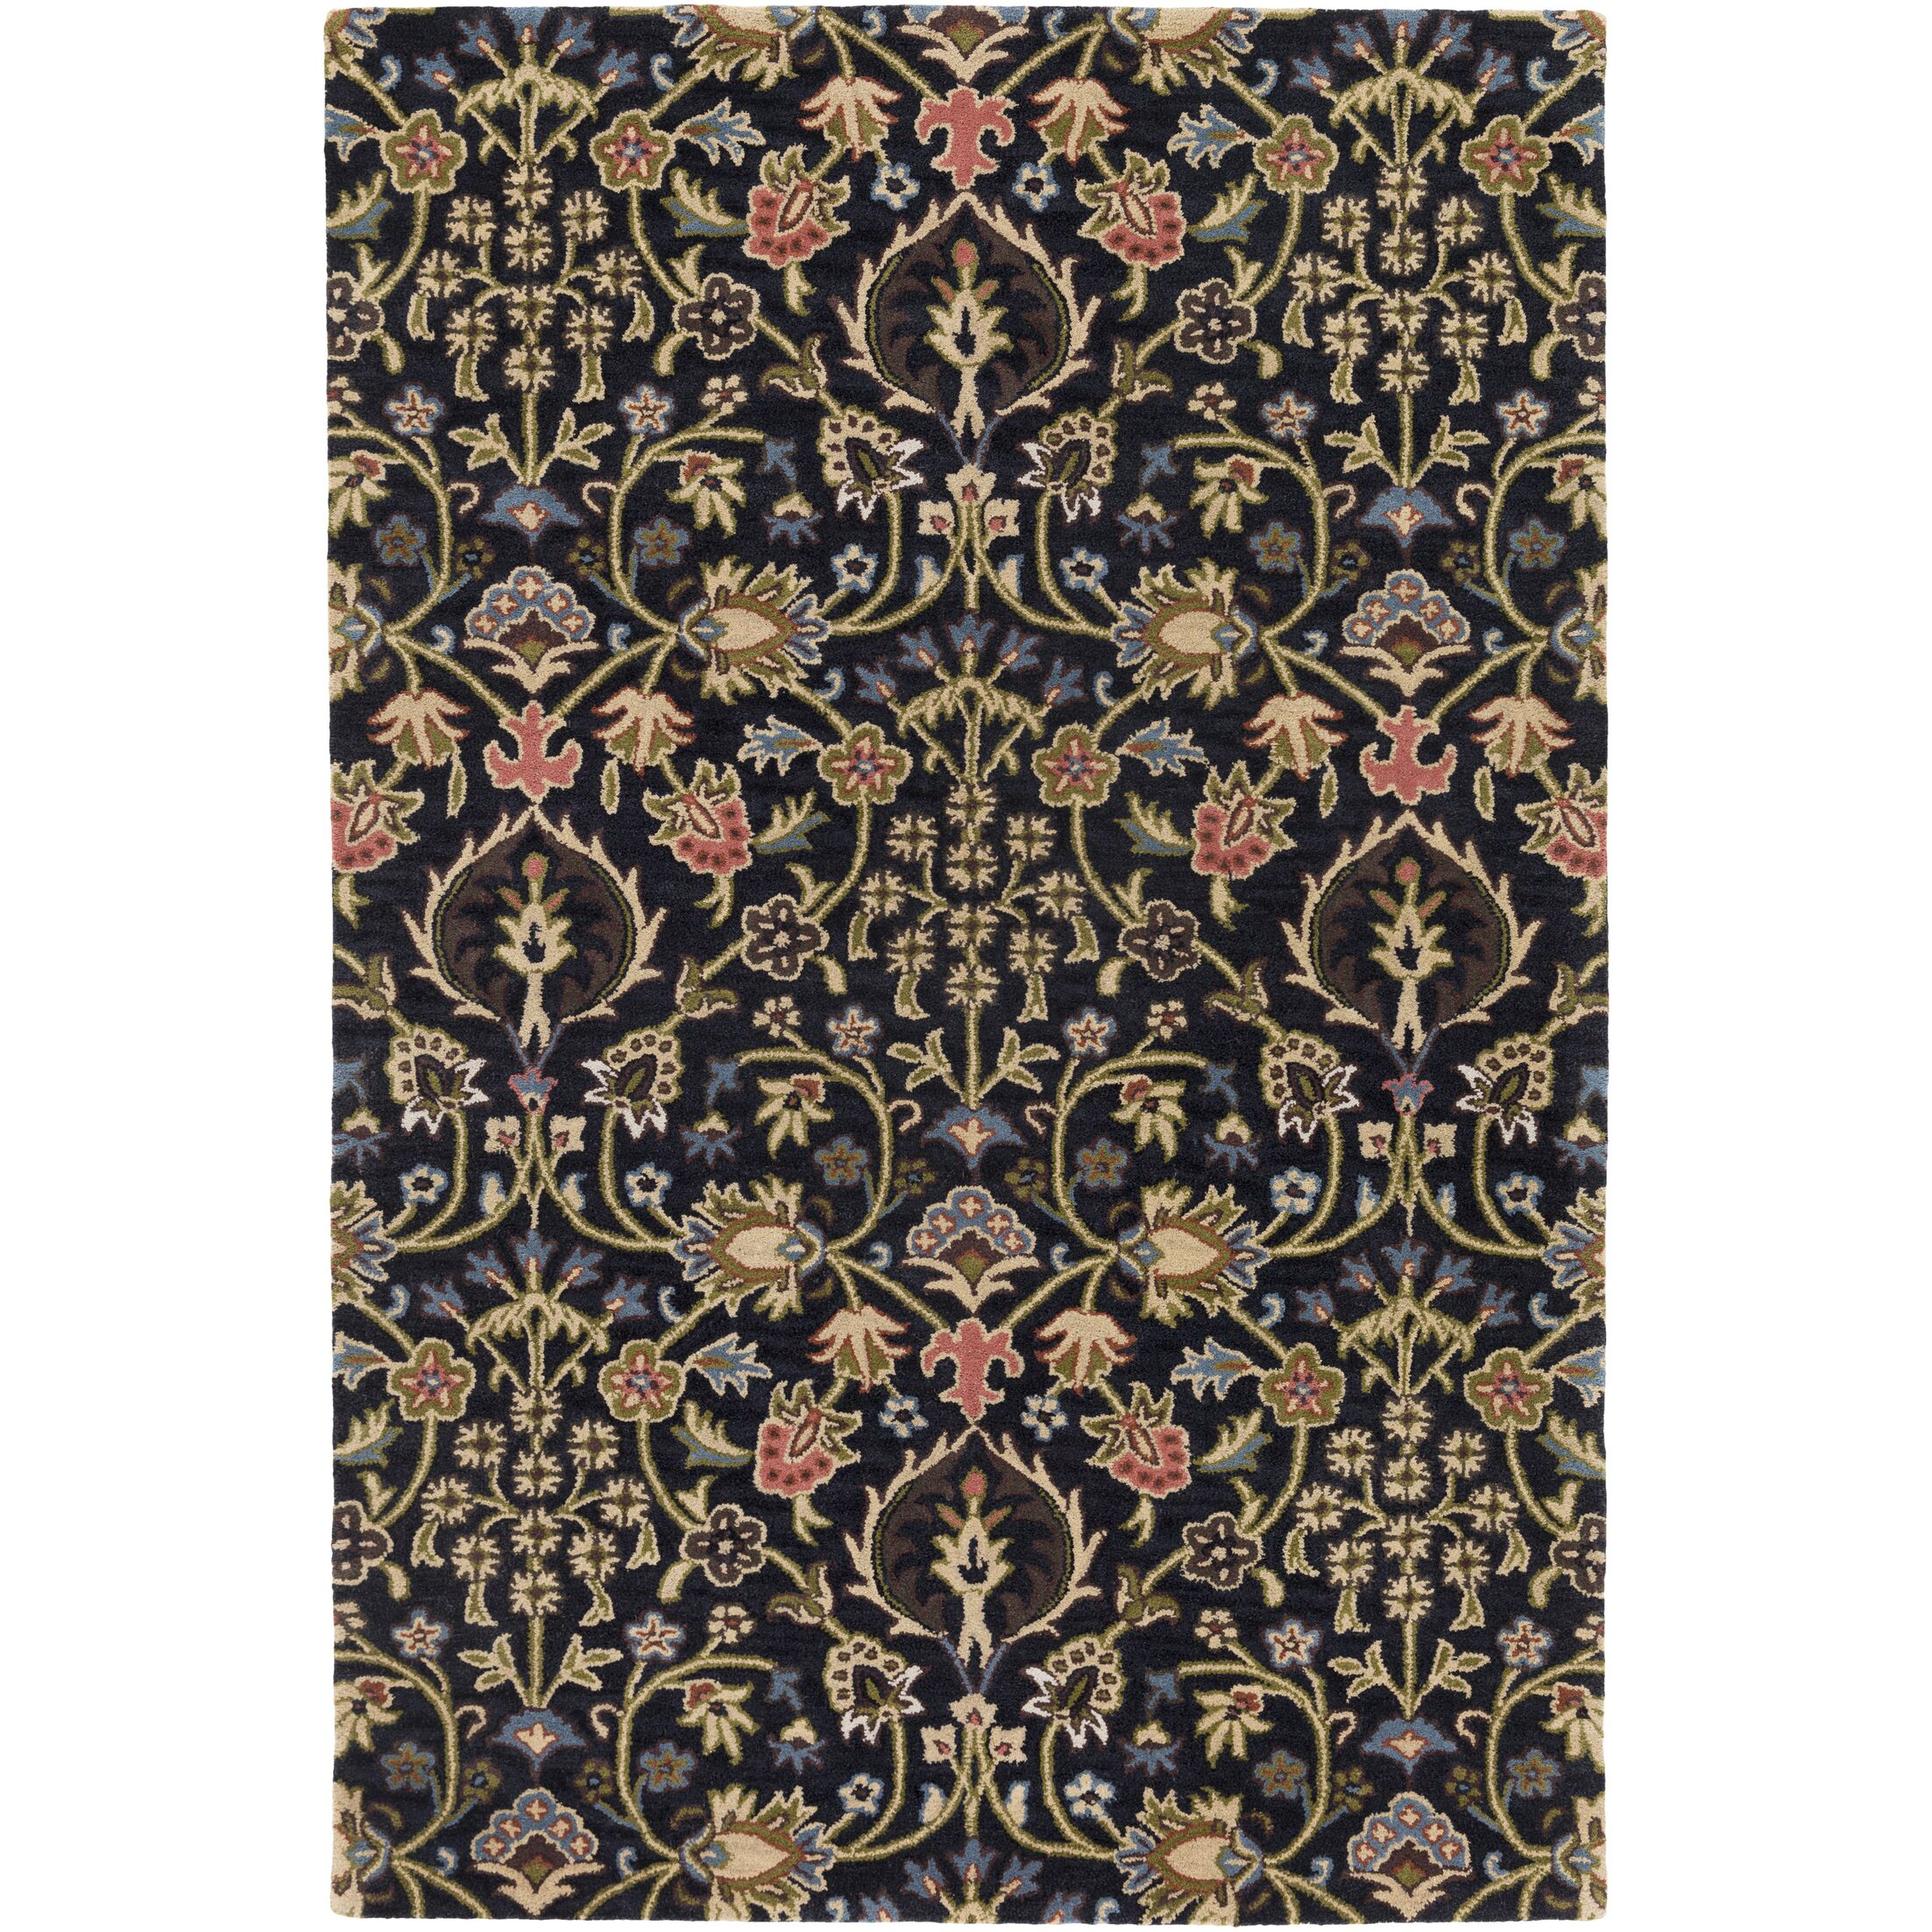 Alden Hand-Tufted Black Area Rug Rug Size: Runner 2'6